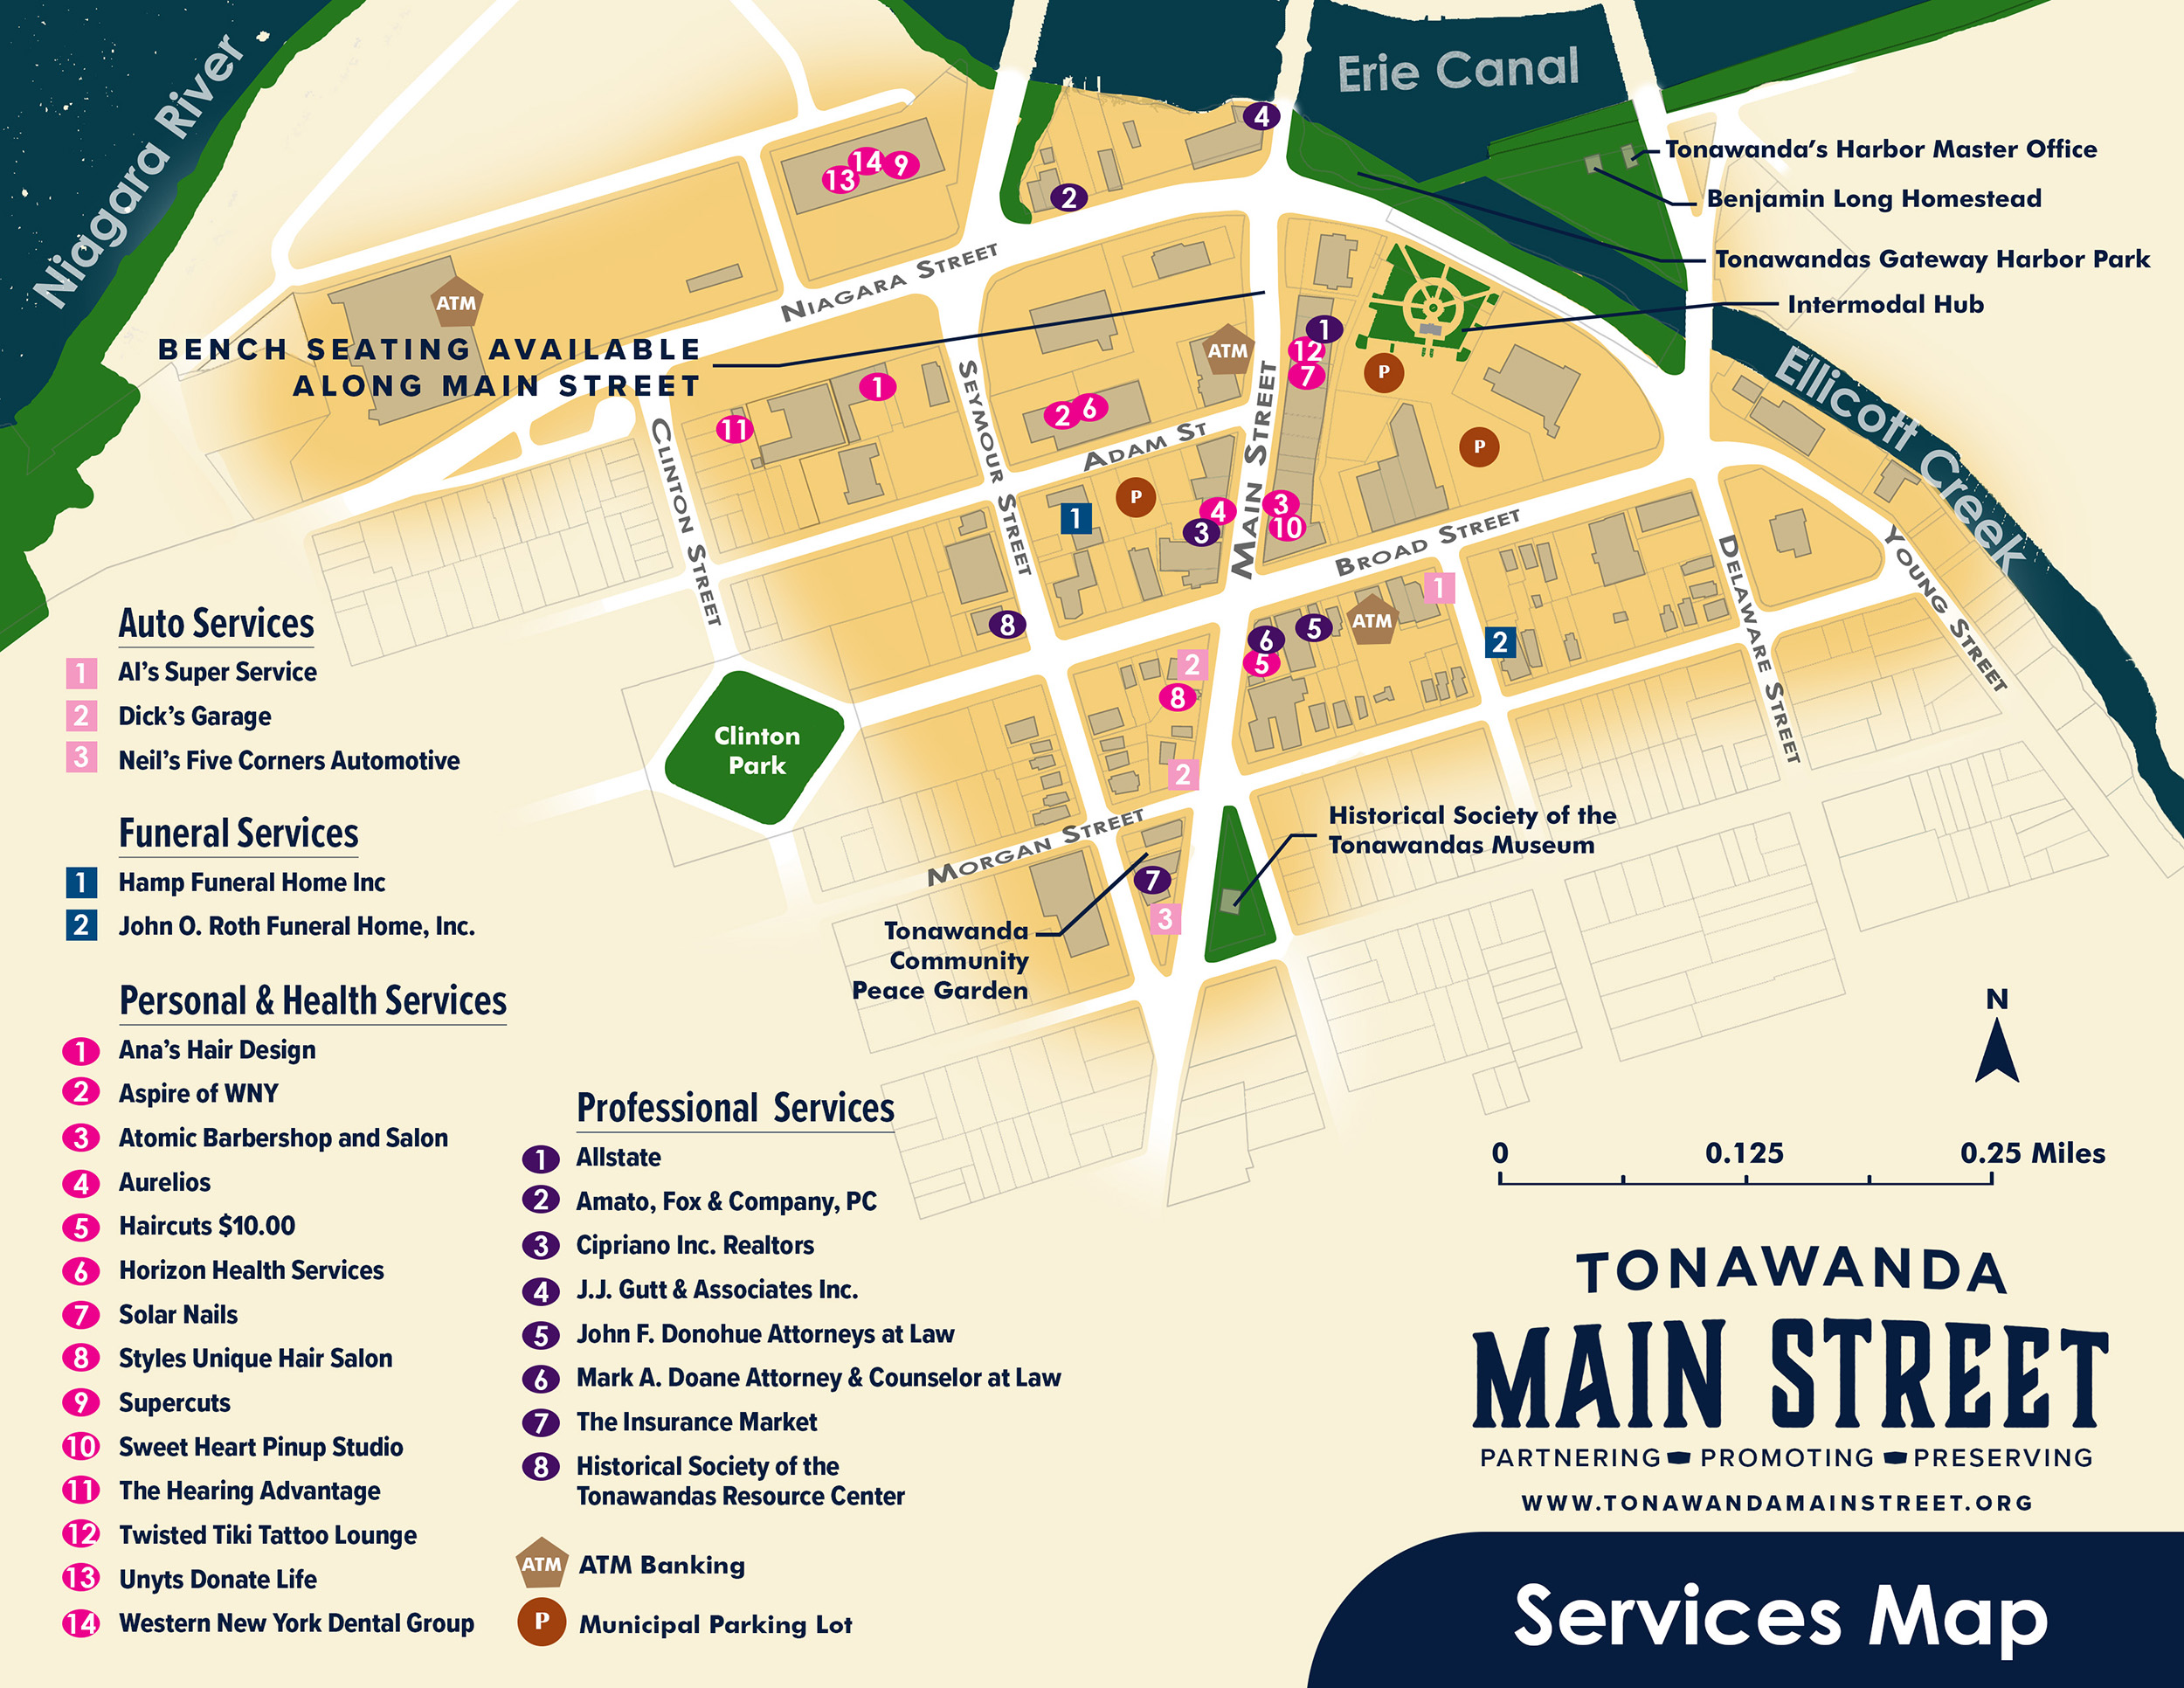 tms-services-map2.jpg